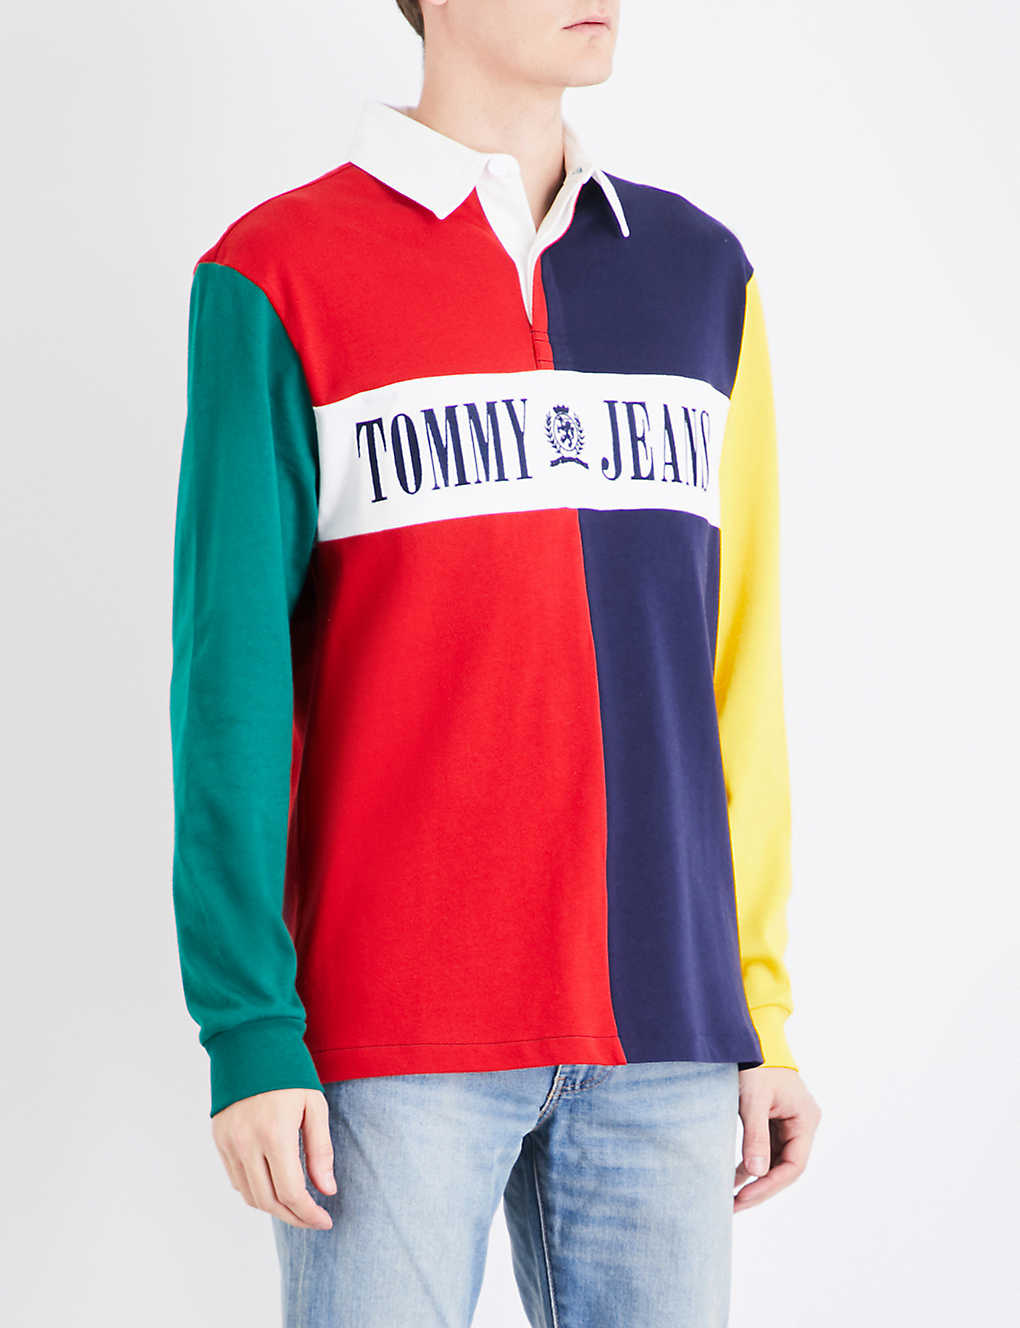 Tommy Jeans 90s Rugby Style Cotton Polo Shirt Selfridges